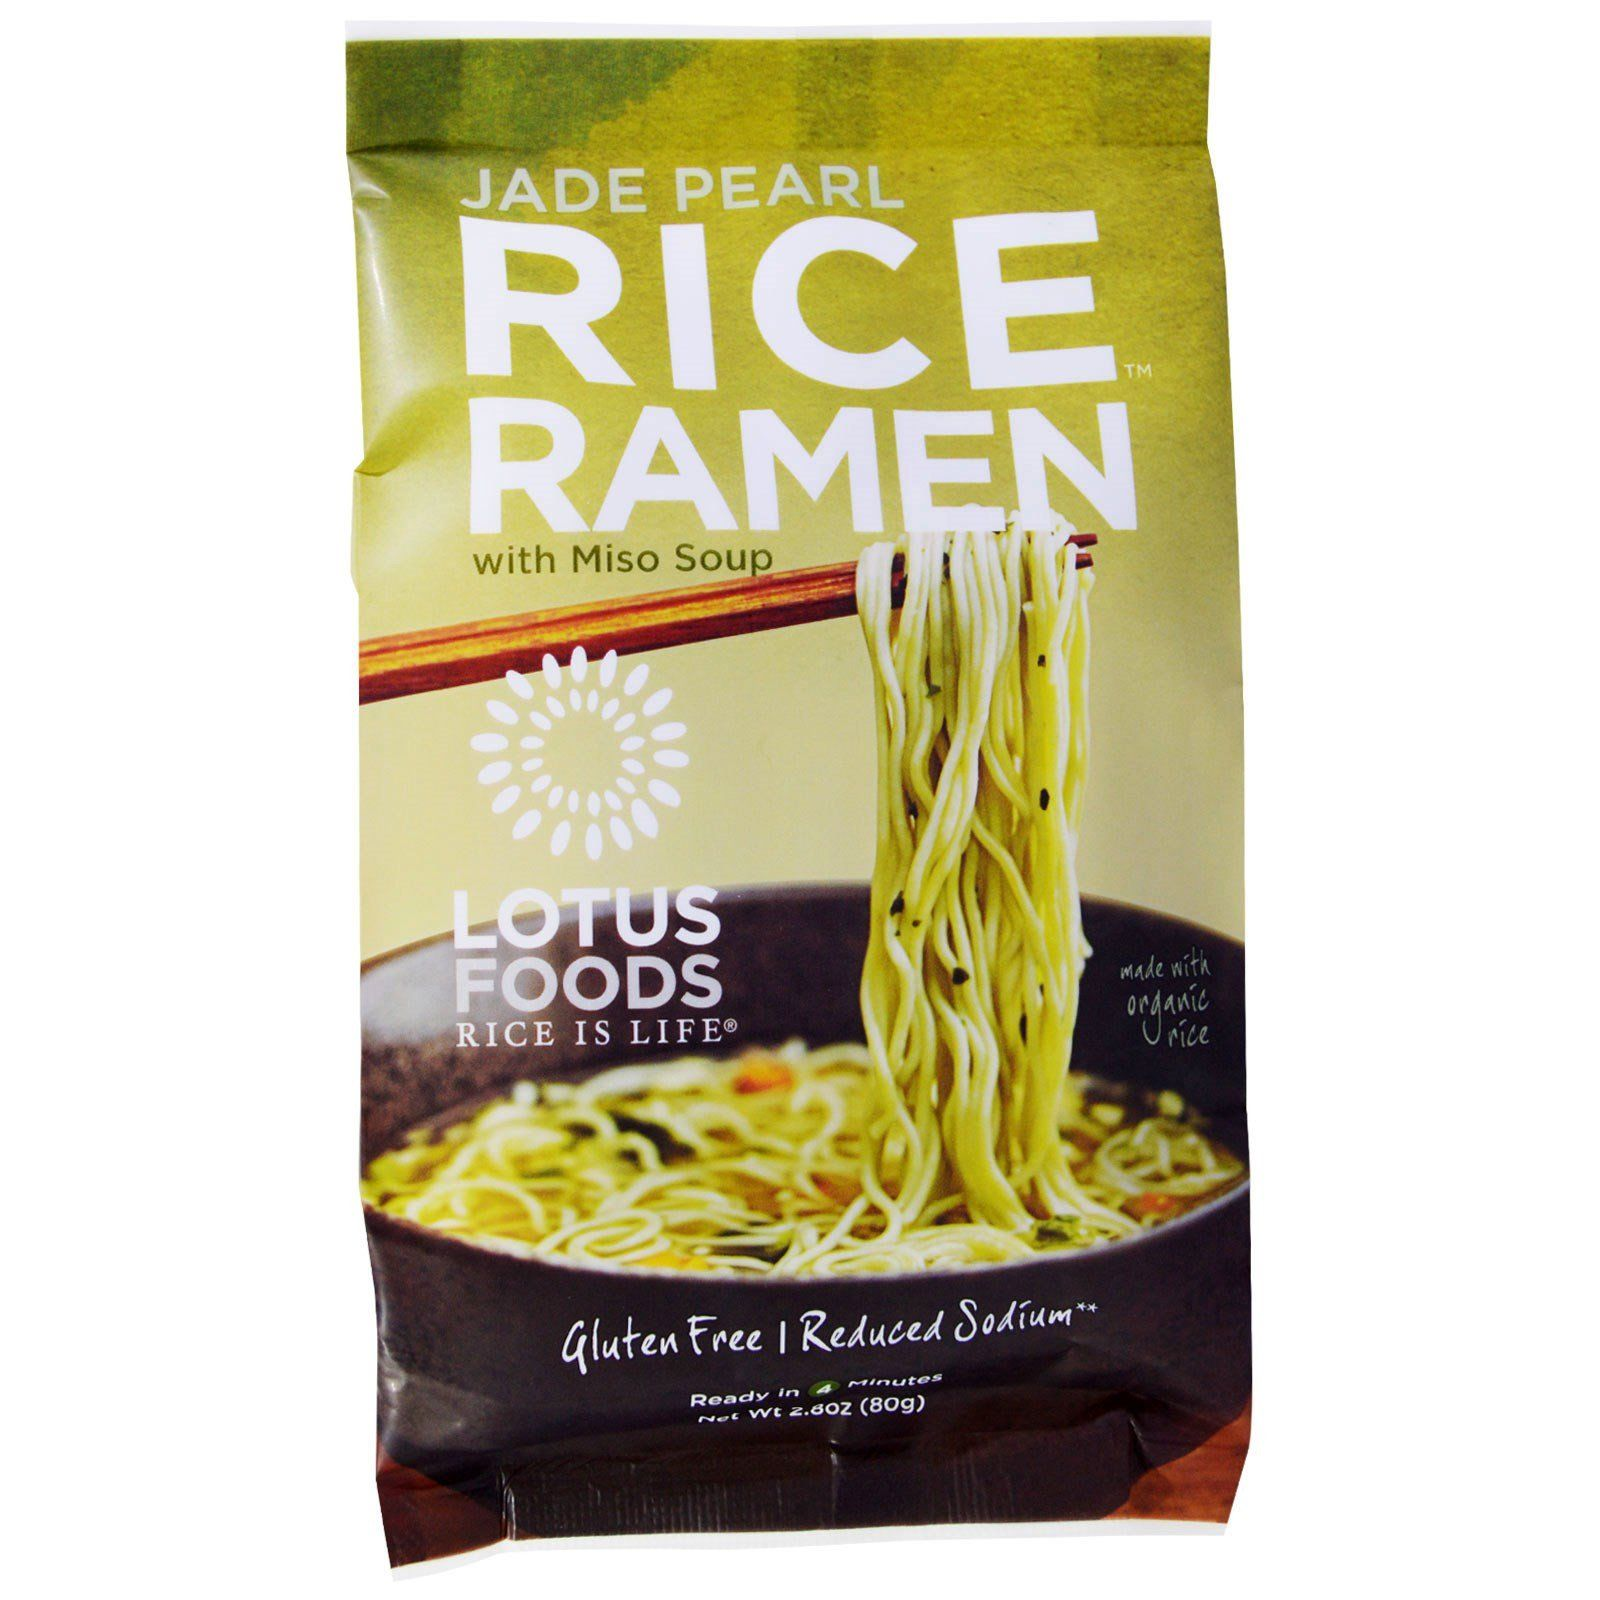 Food & Drink - Lotus Rice - Forbidden Rice® Ramen - Jade Pearl, 80g